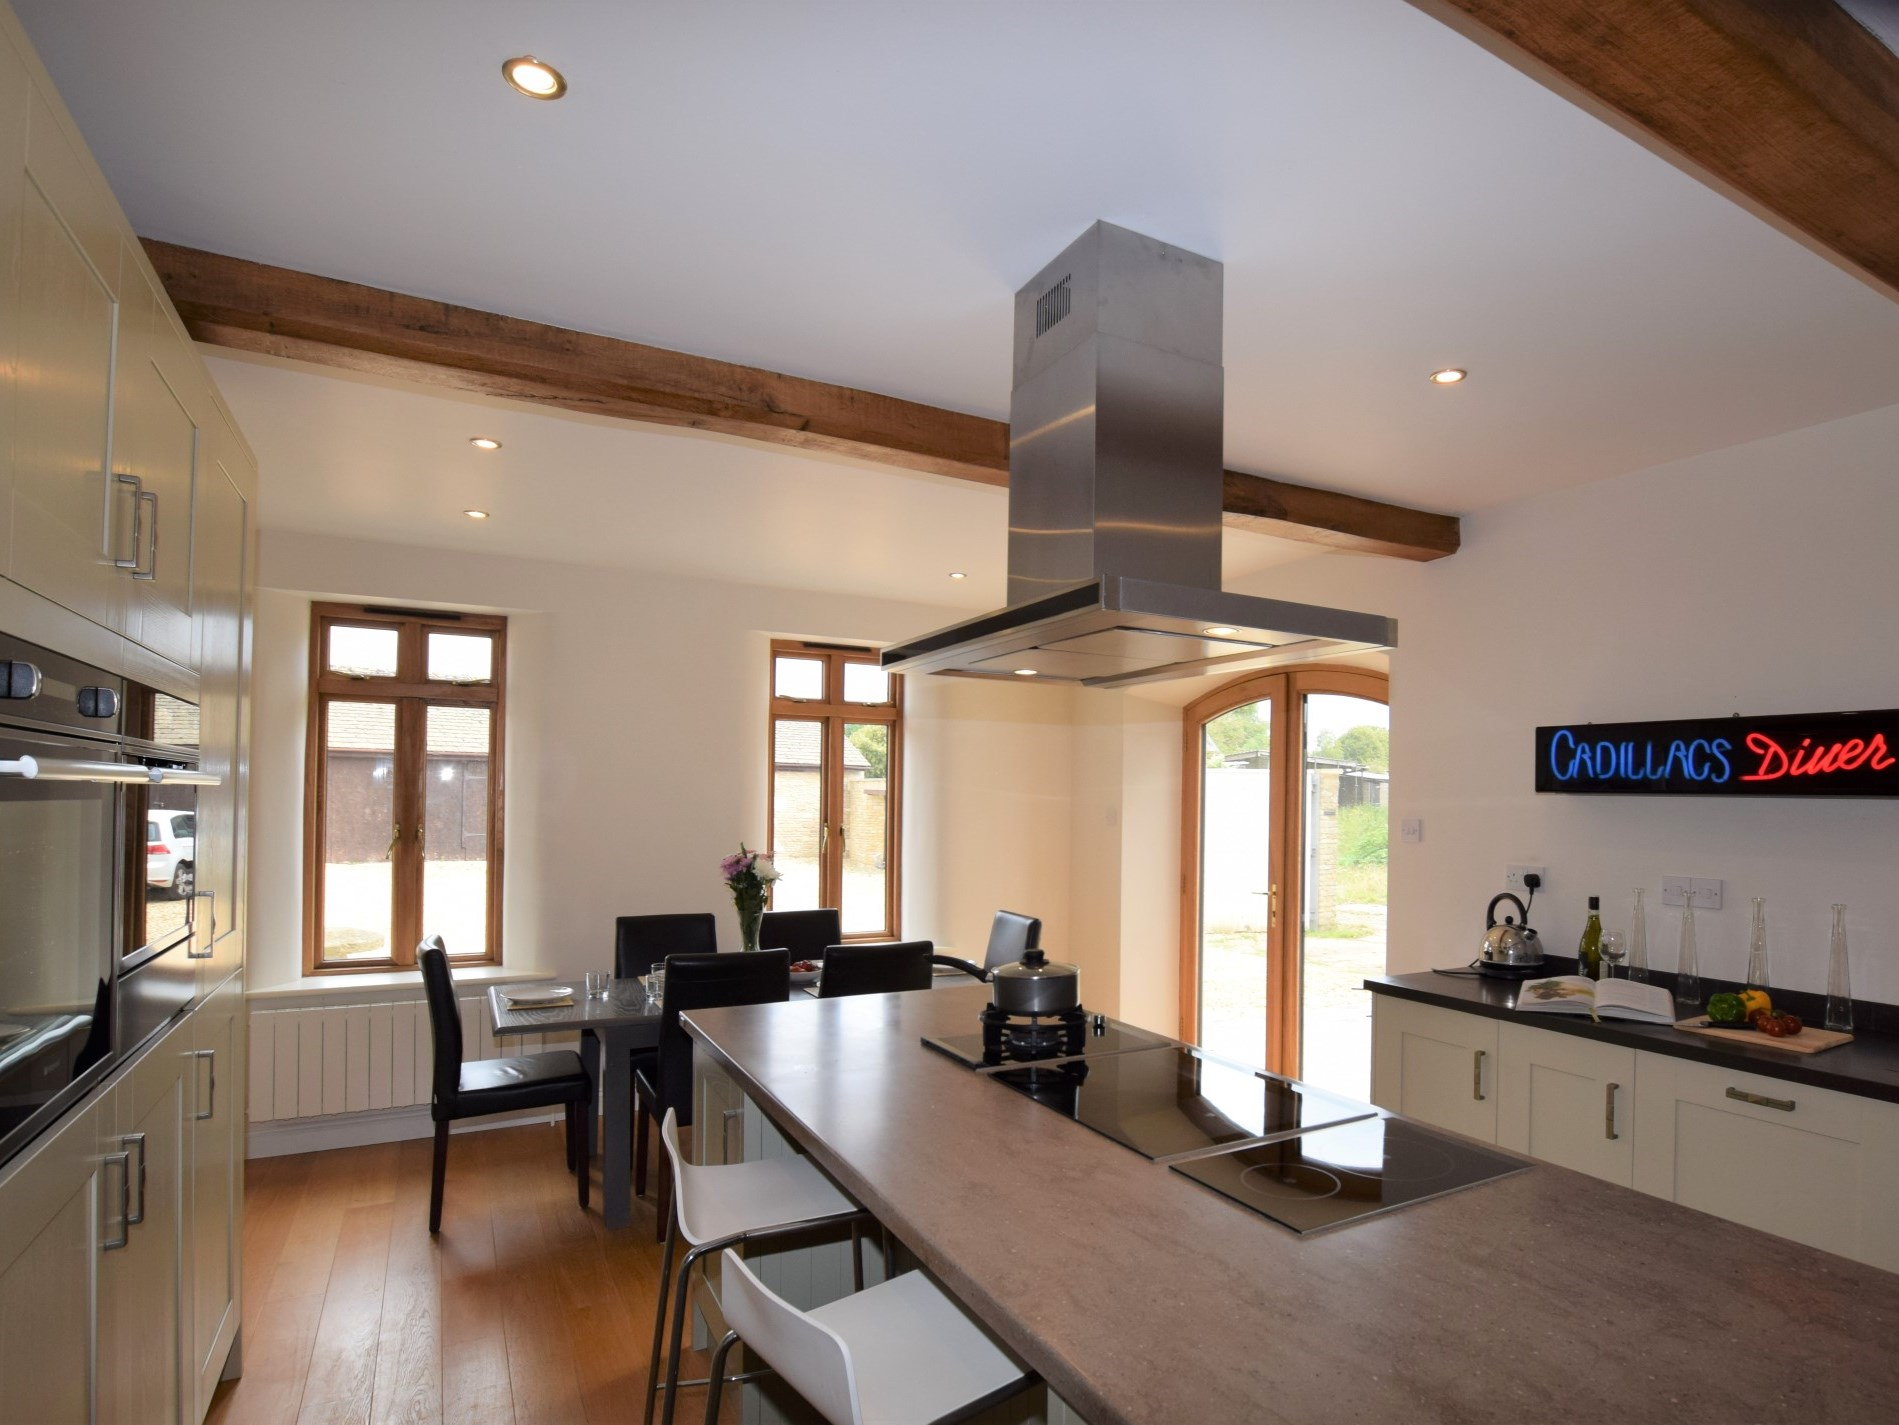 Perfect kitchen to entertain and come together